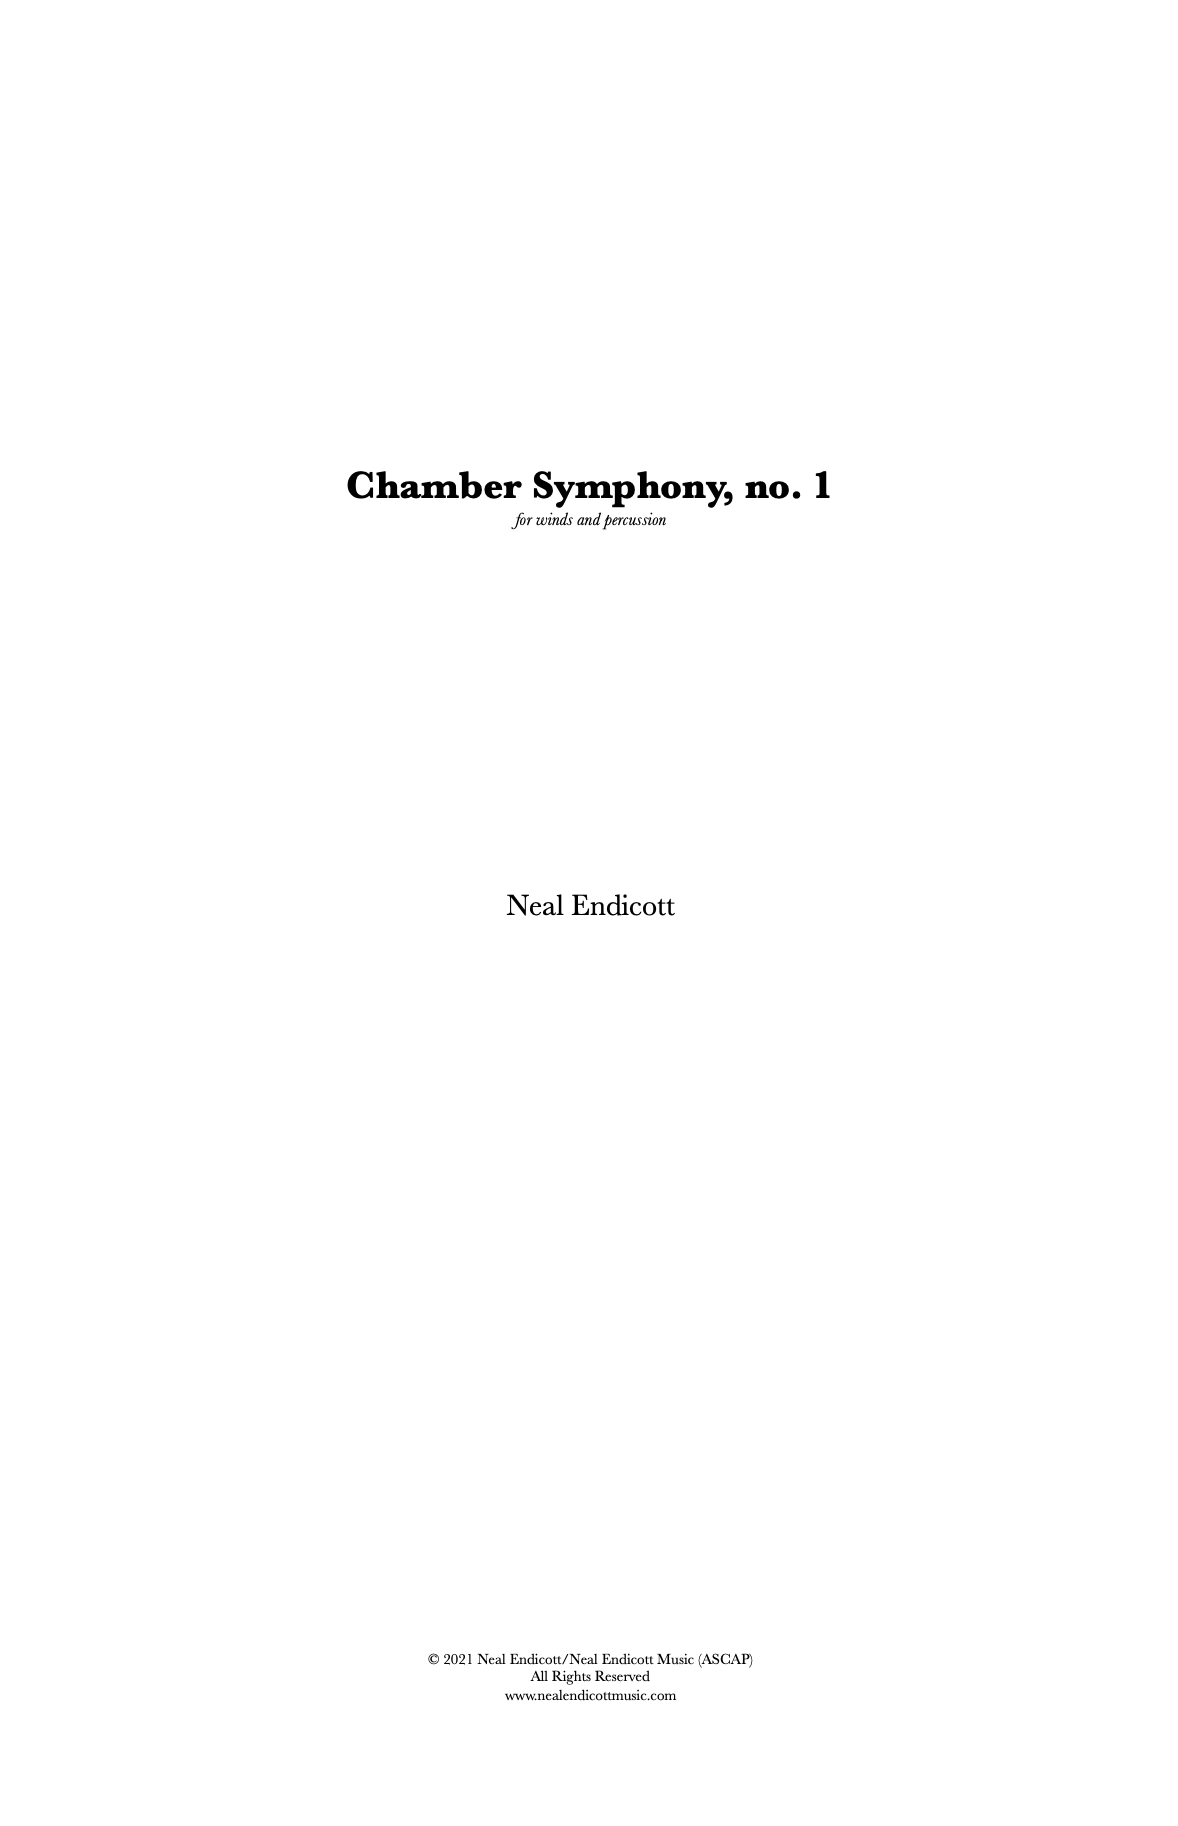 Chamber Symphony No. 1 by Neal Endicott